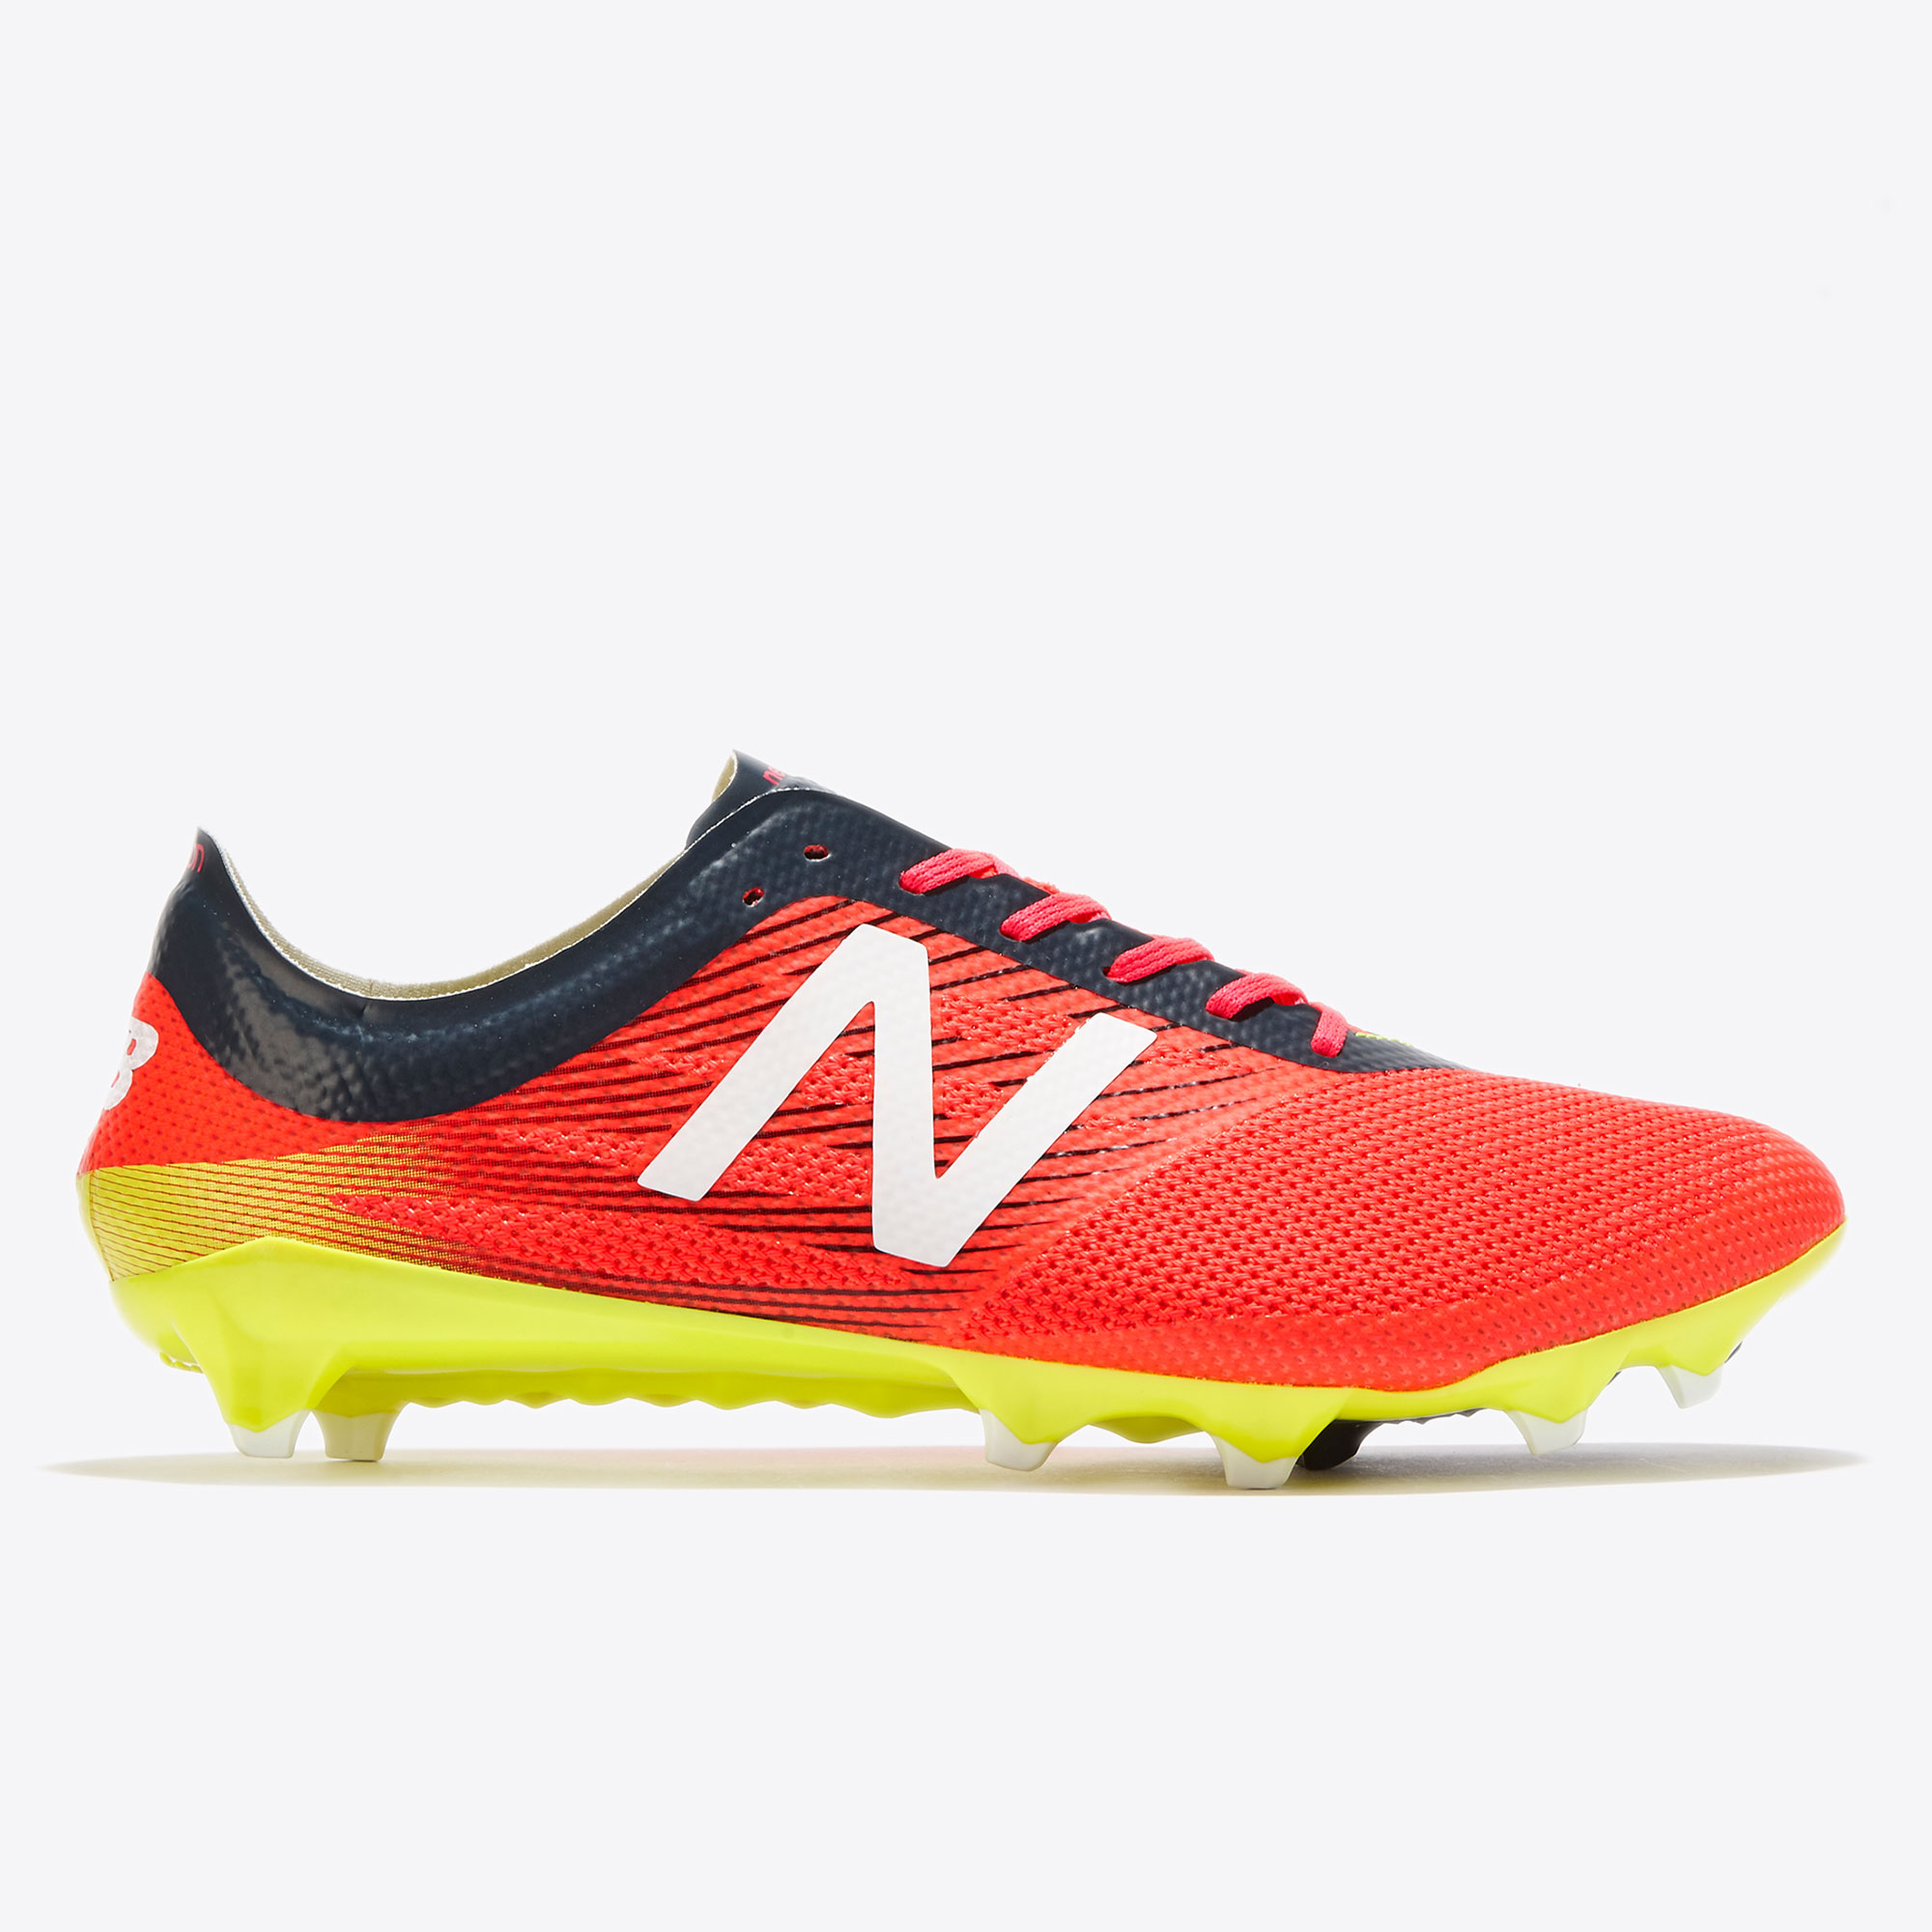 New Balance Furon 2.0 Pro Soft Ground Football Boots - Bright Cherry